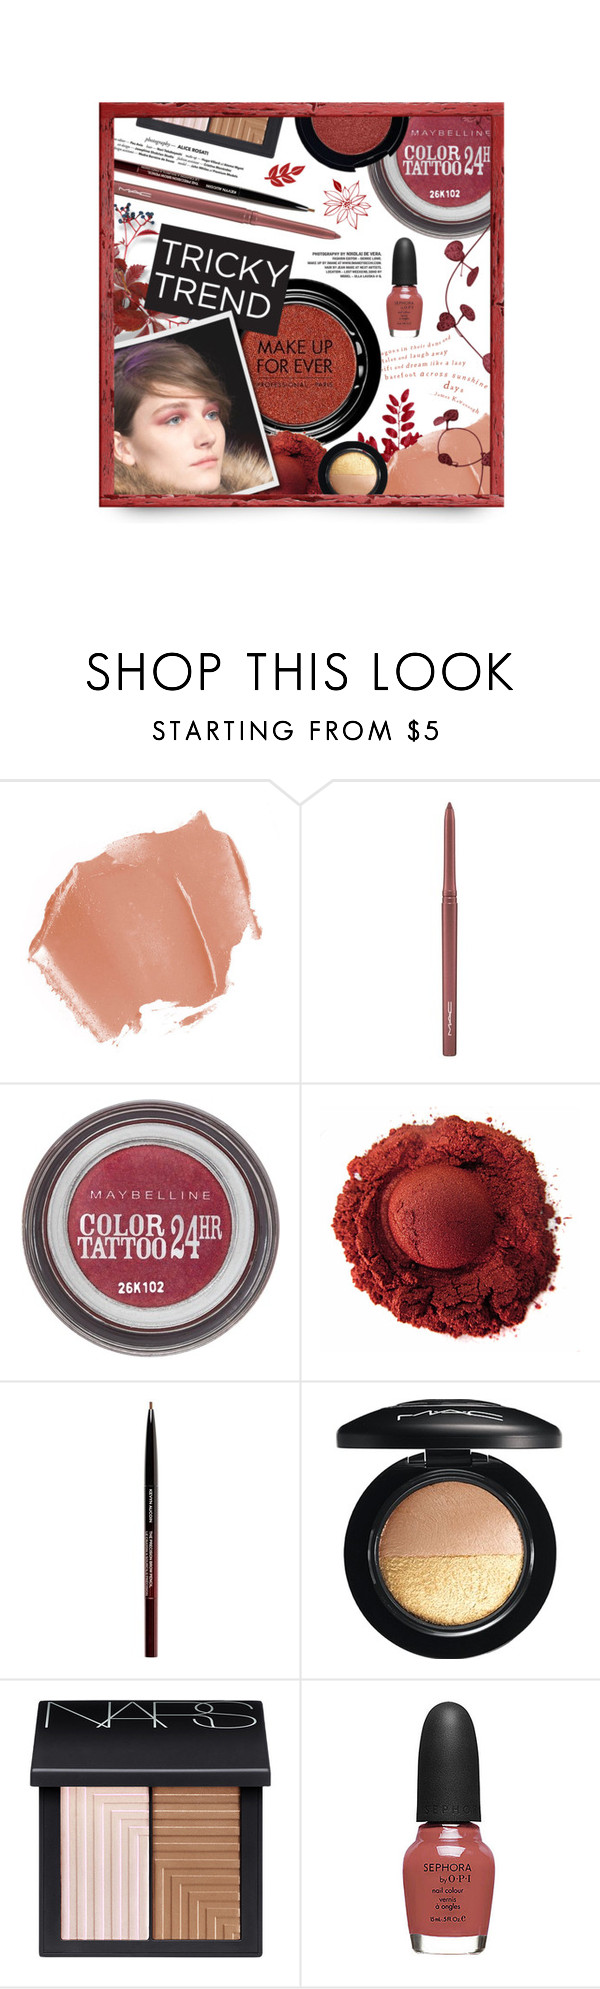 """""""Tricky Trend: Red Eye Makeup"""" by cultofsharon ❤ liked on Polyvore featuring beauty, MAKE UP FOR EVER, MAC Cosmetics, Maybelline, Kevyn Aucoin, Stila, NARS Cosmetics, Sephora Collection and Retrò"""